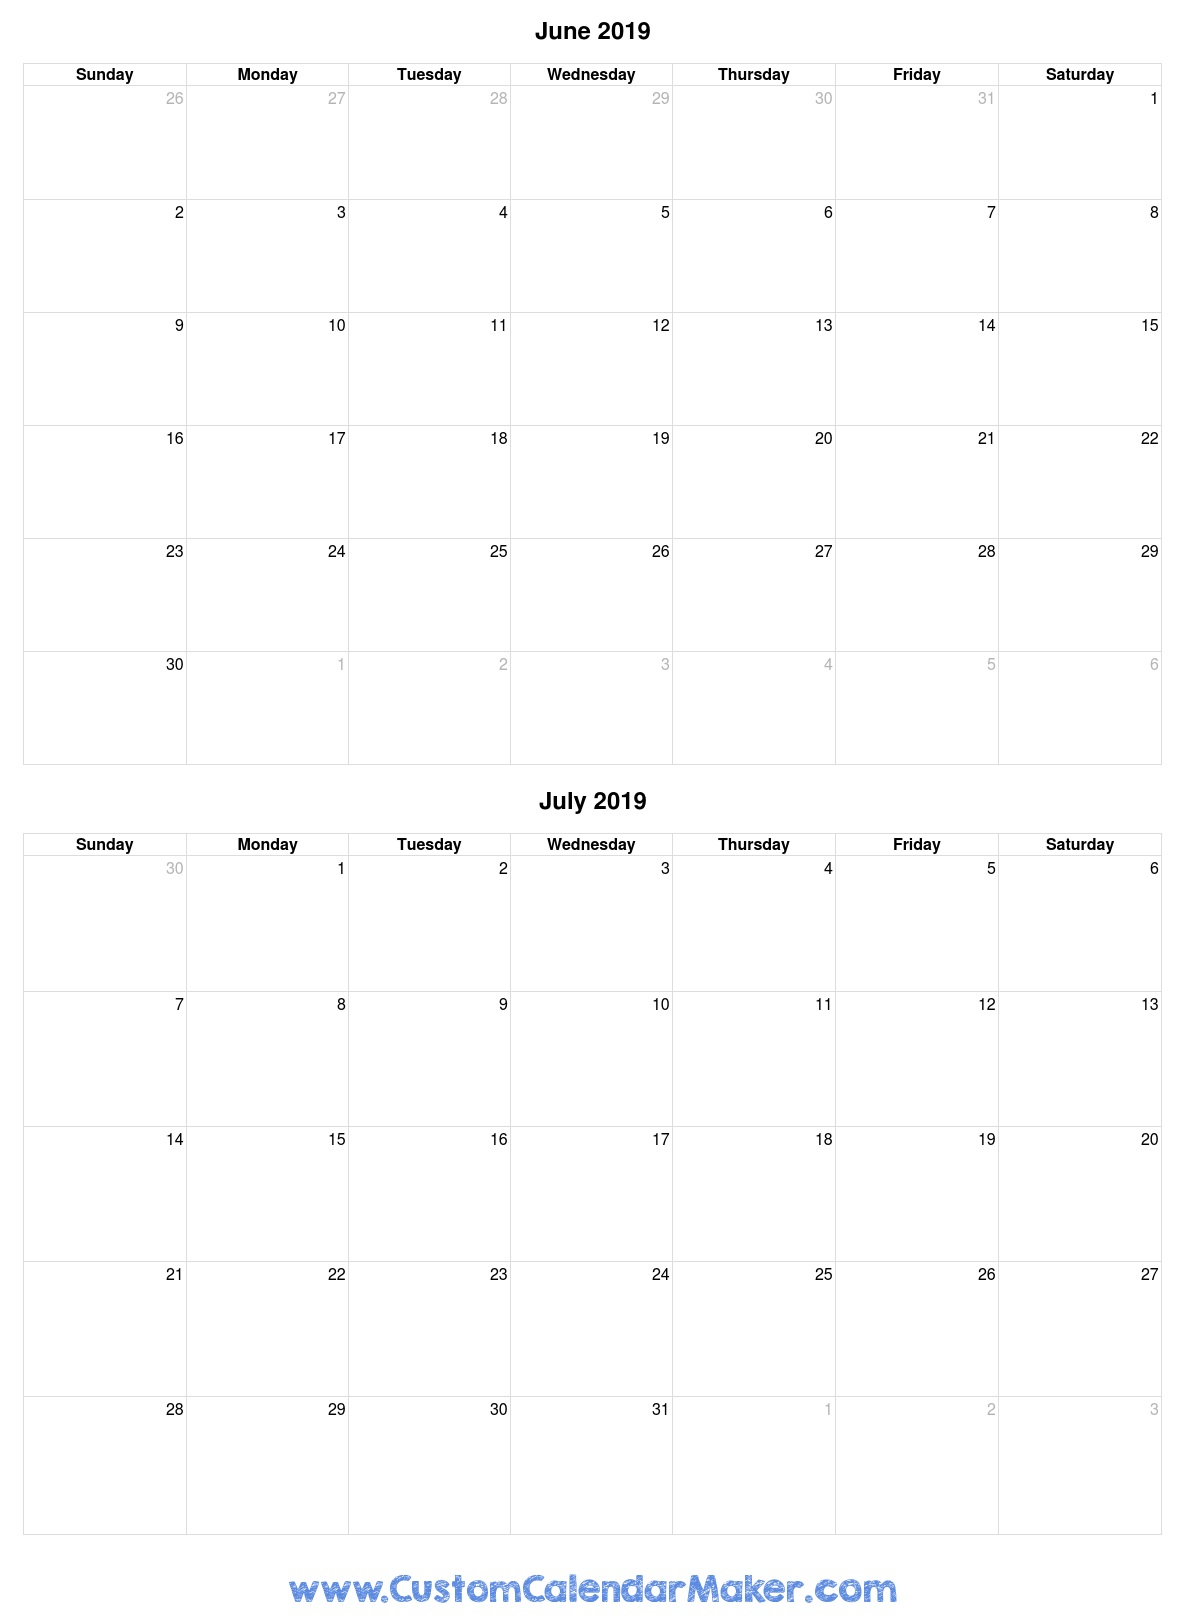 June And July 2019 Free Printable Calendar Template throughout Blank June And July Calendar